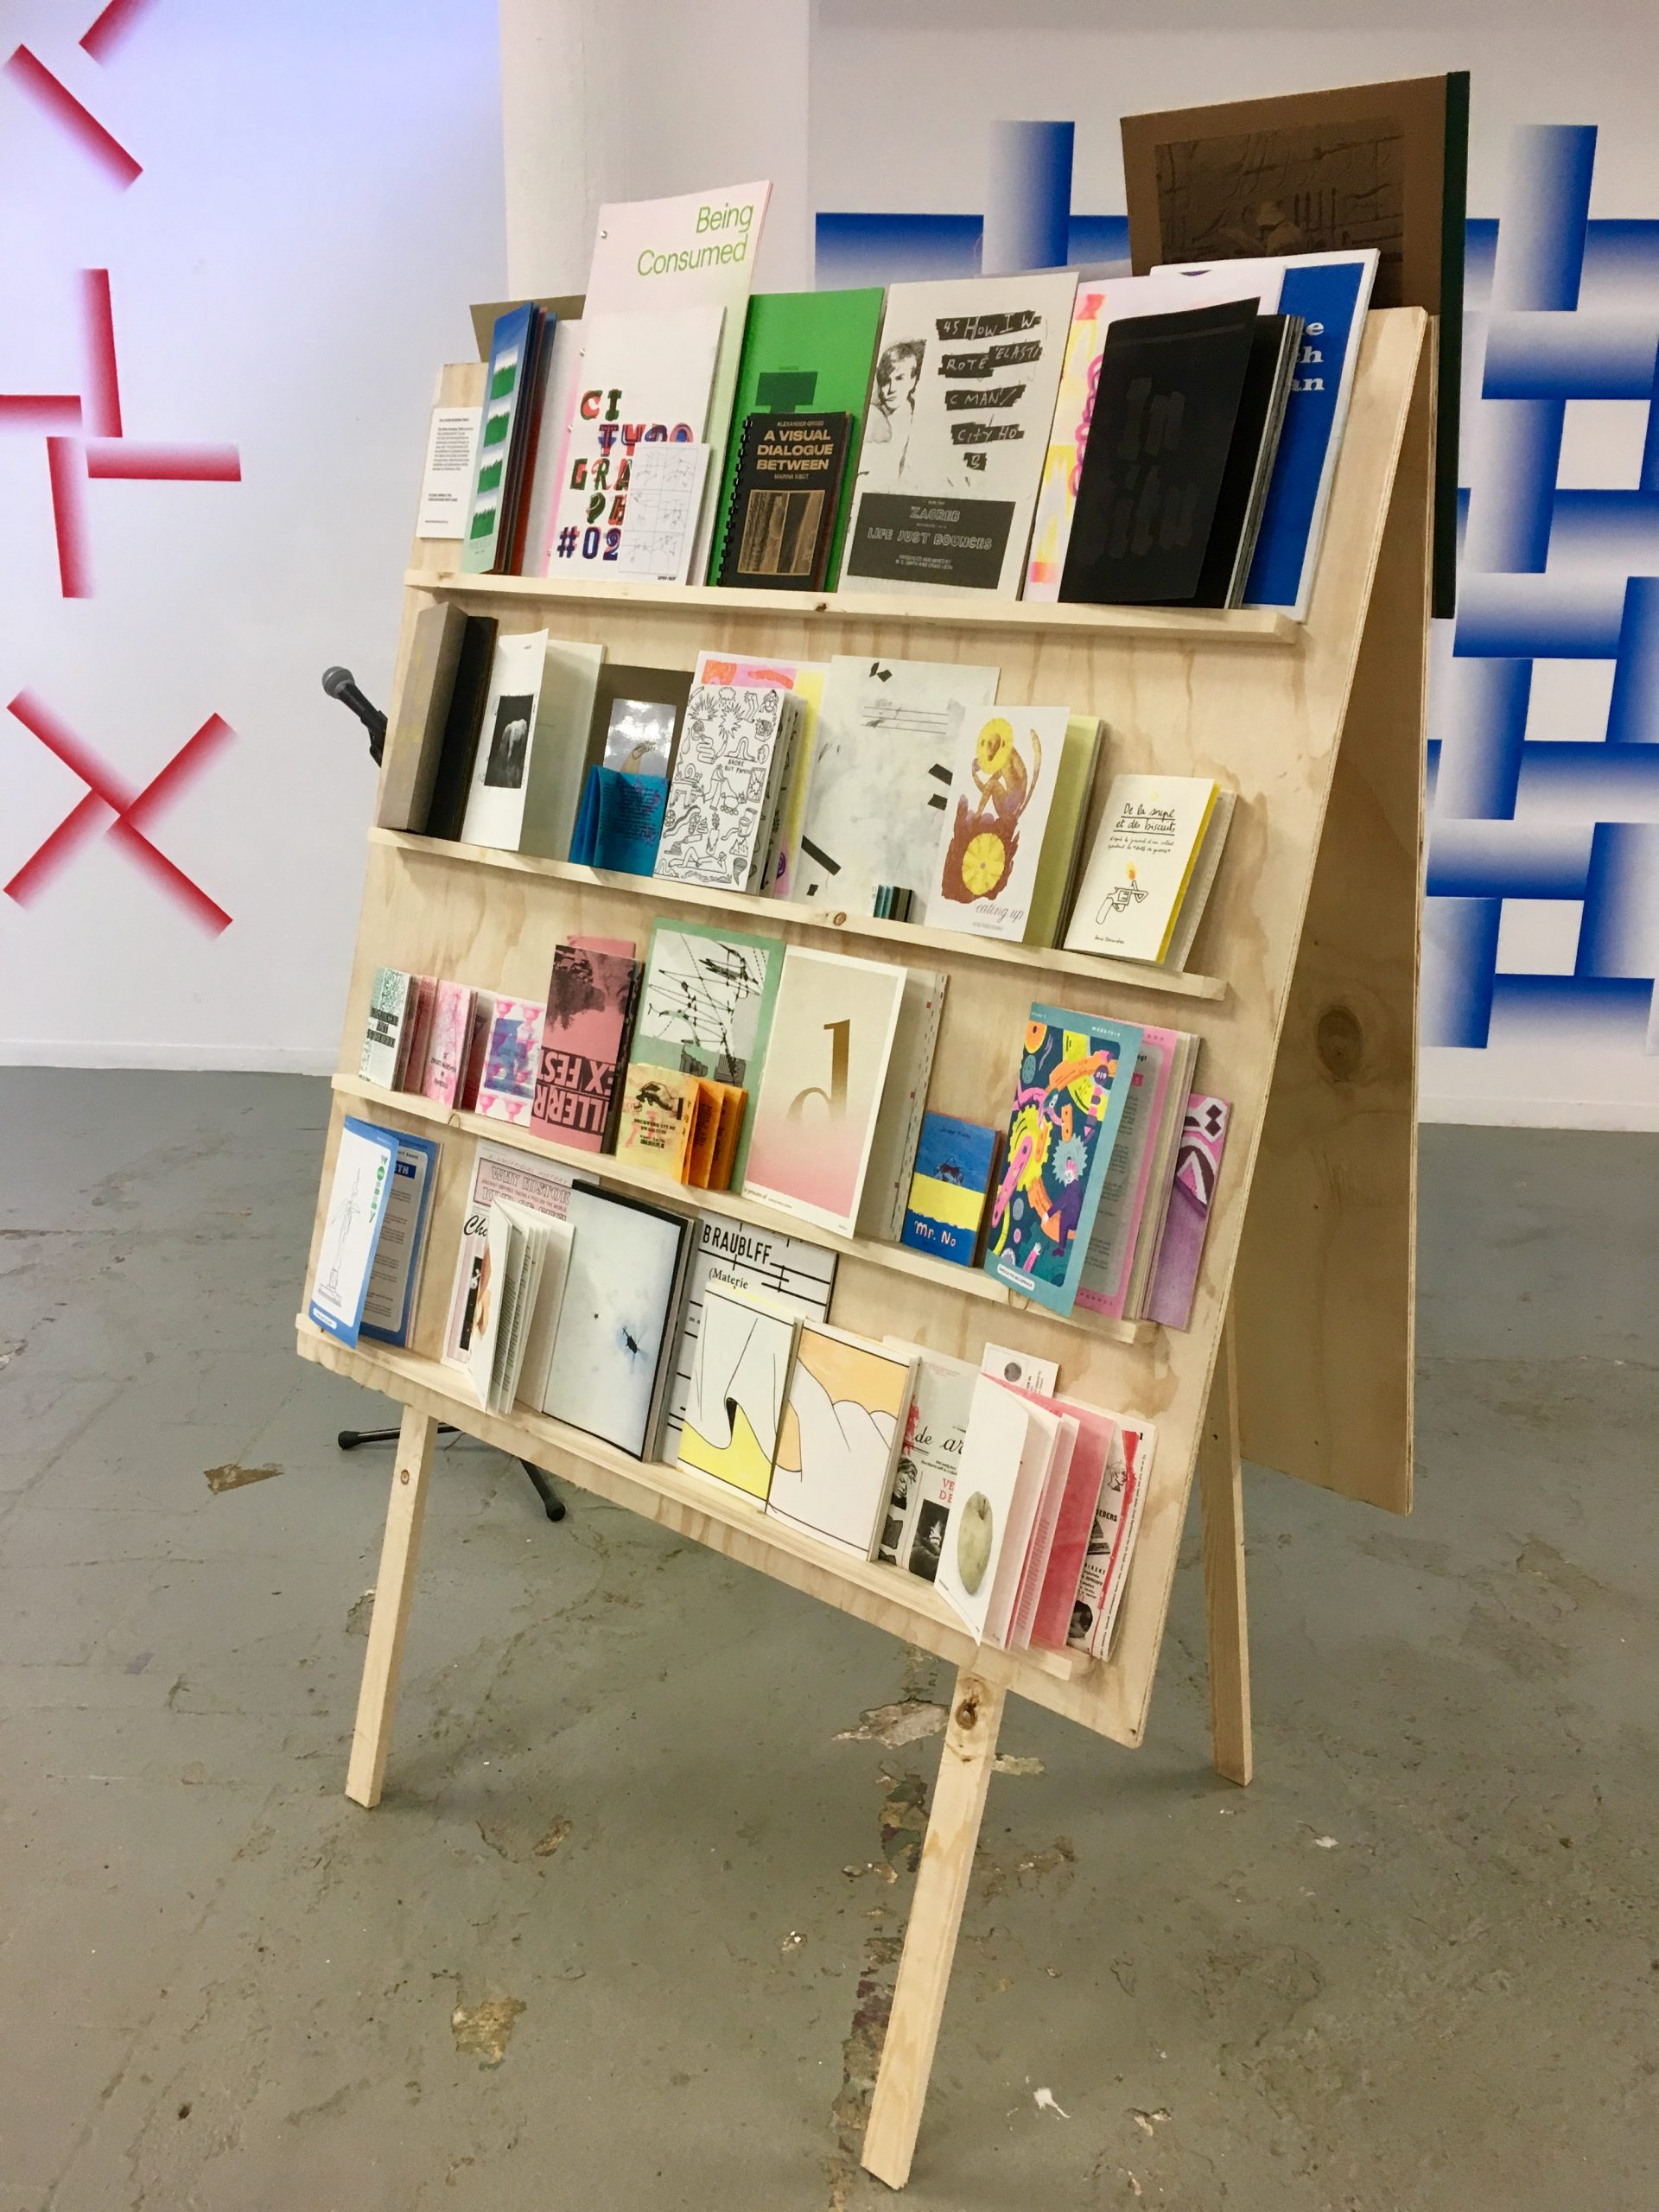 The Neighbourhood of Infinity at Riso Revolution, Quartair, The Hague - part of The Other Book Fair